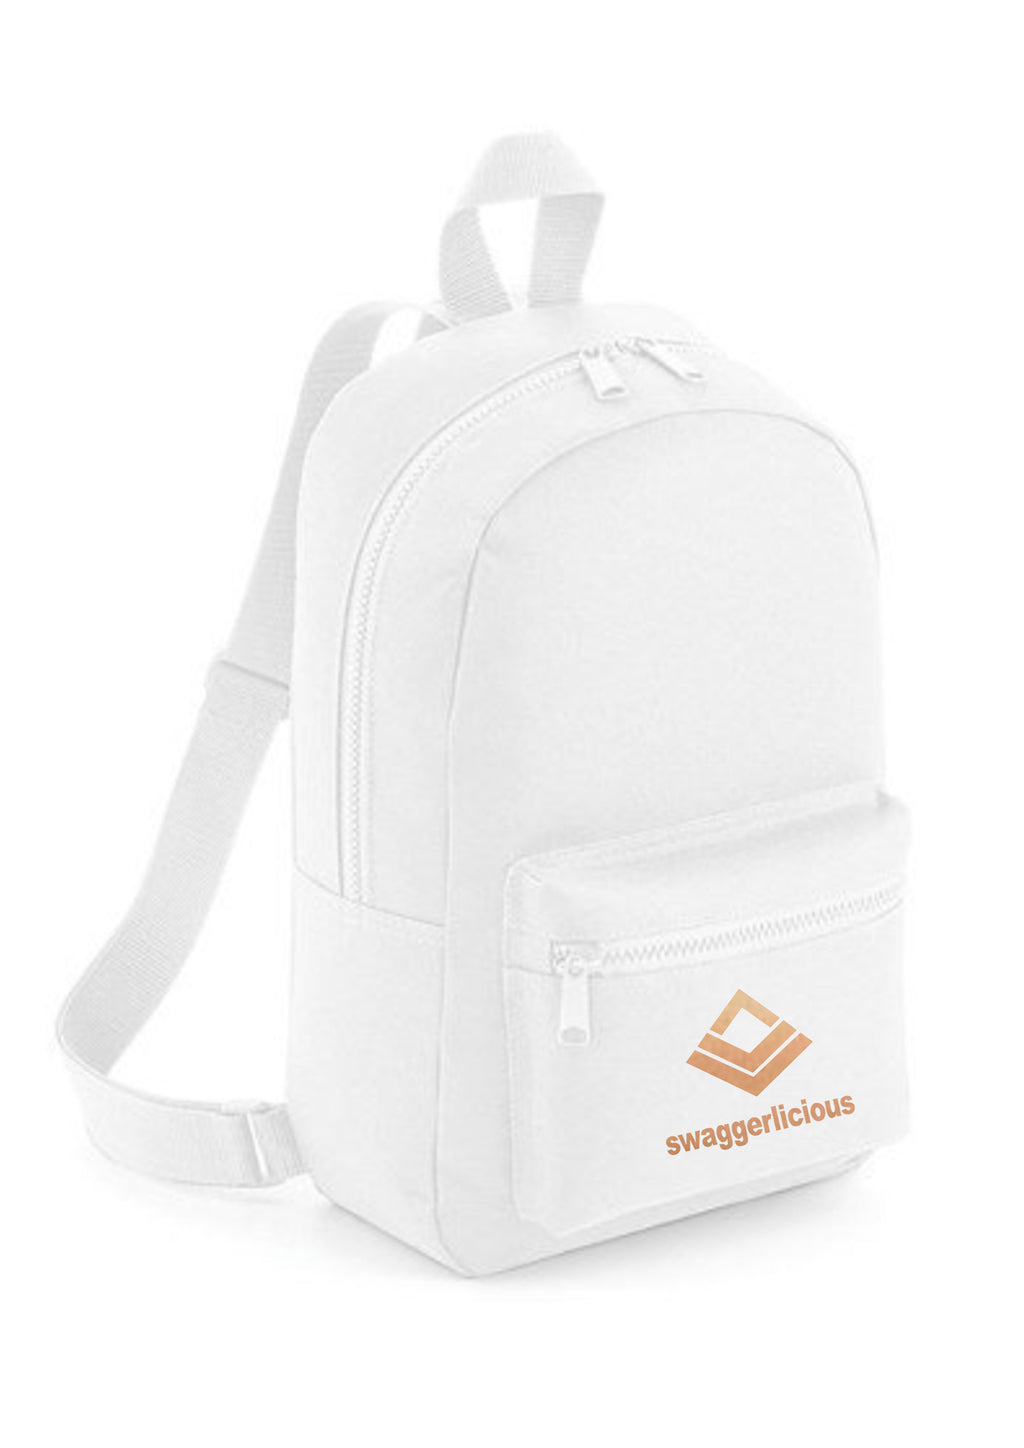 Swaggerlicious Classic White Mini Backpack with Rose Gold Logo - swaggerlicious-clothing.com